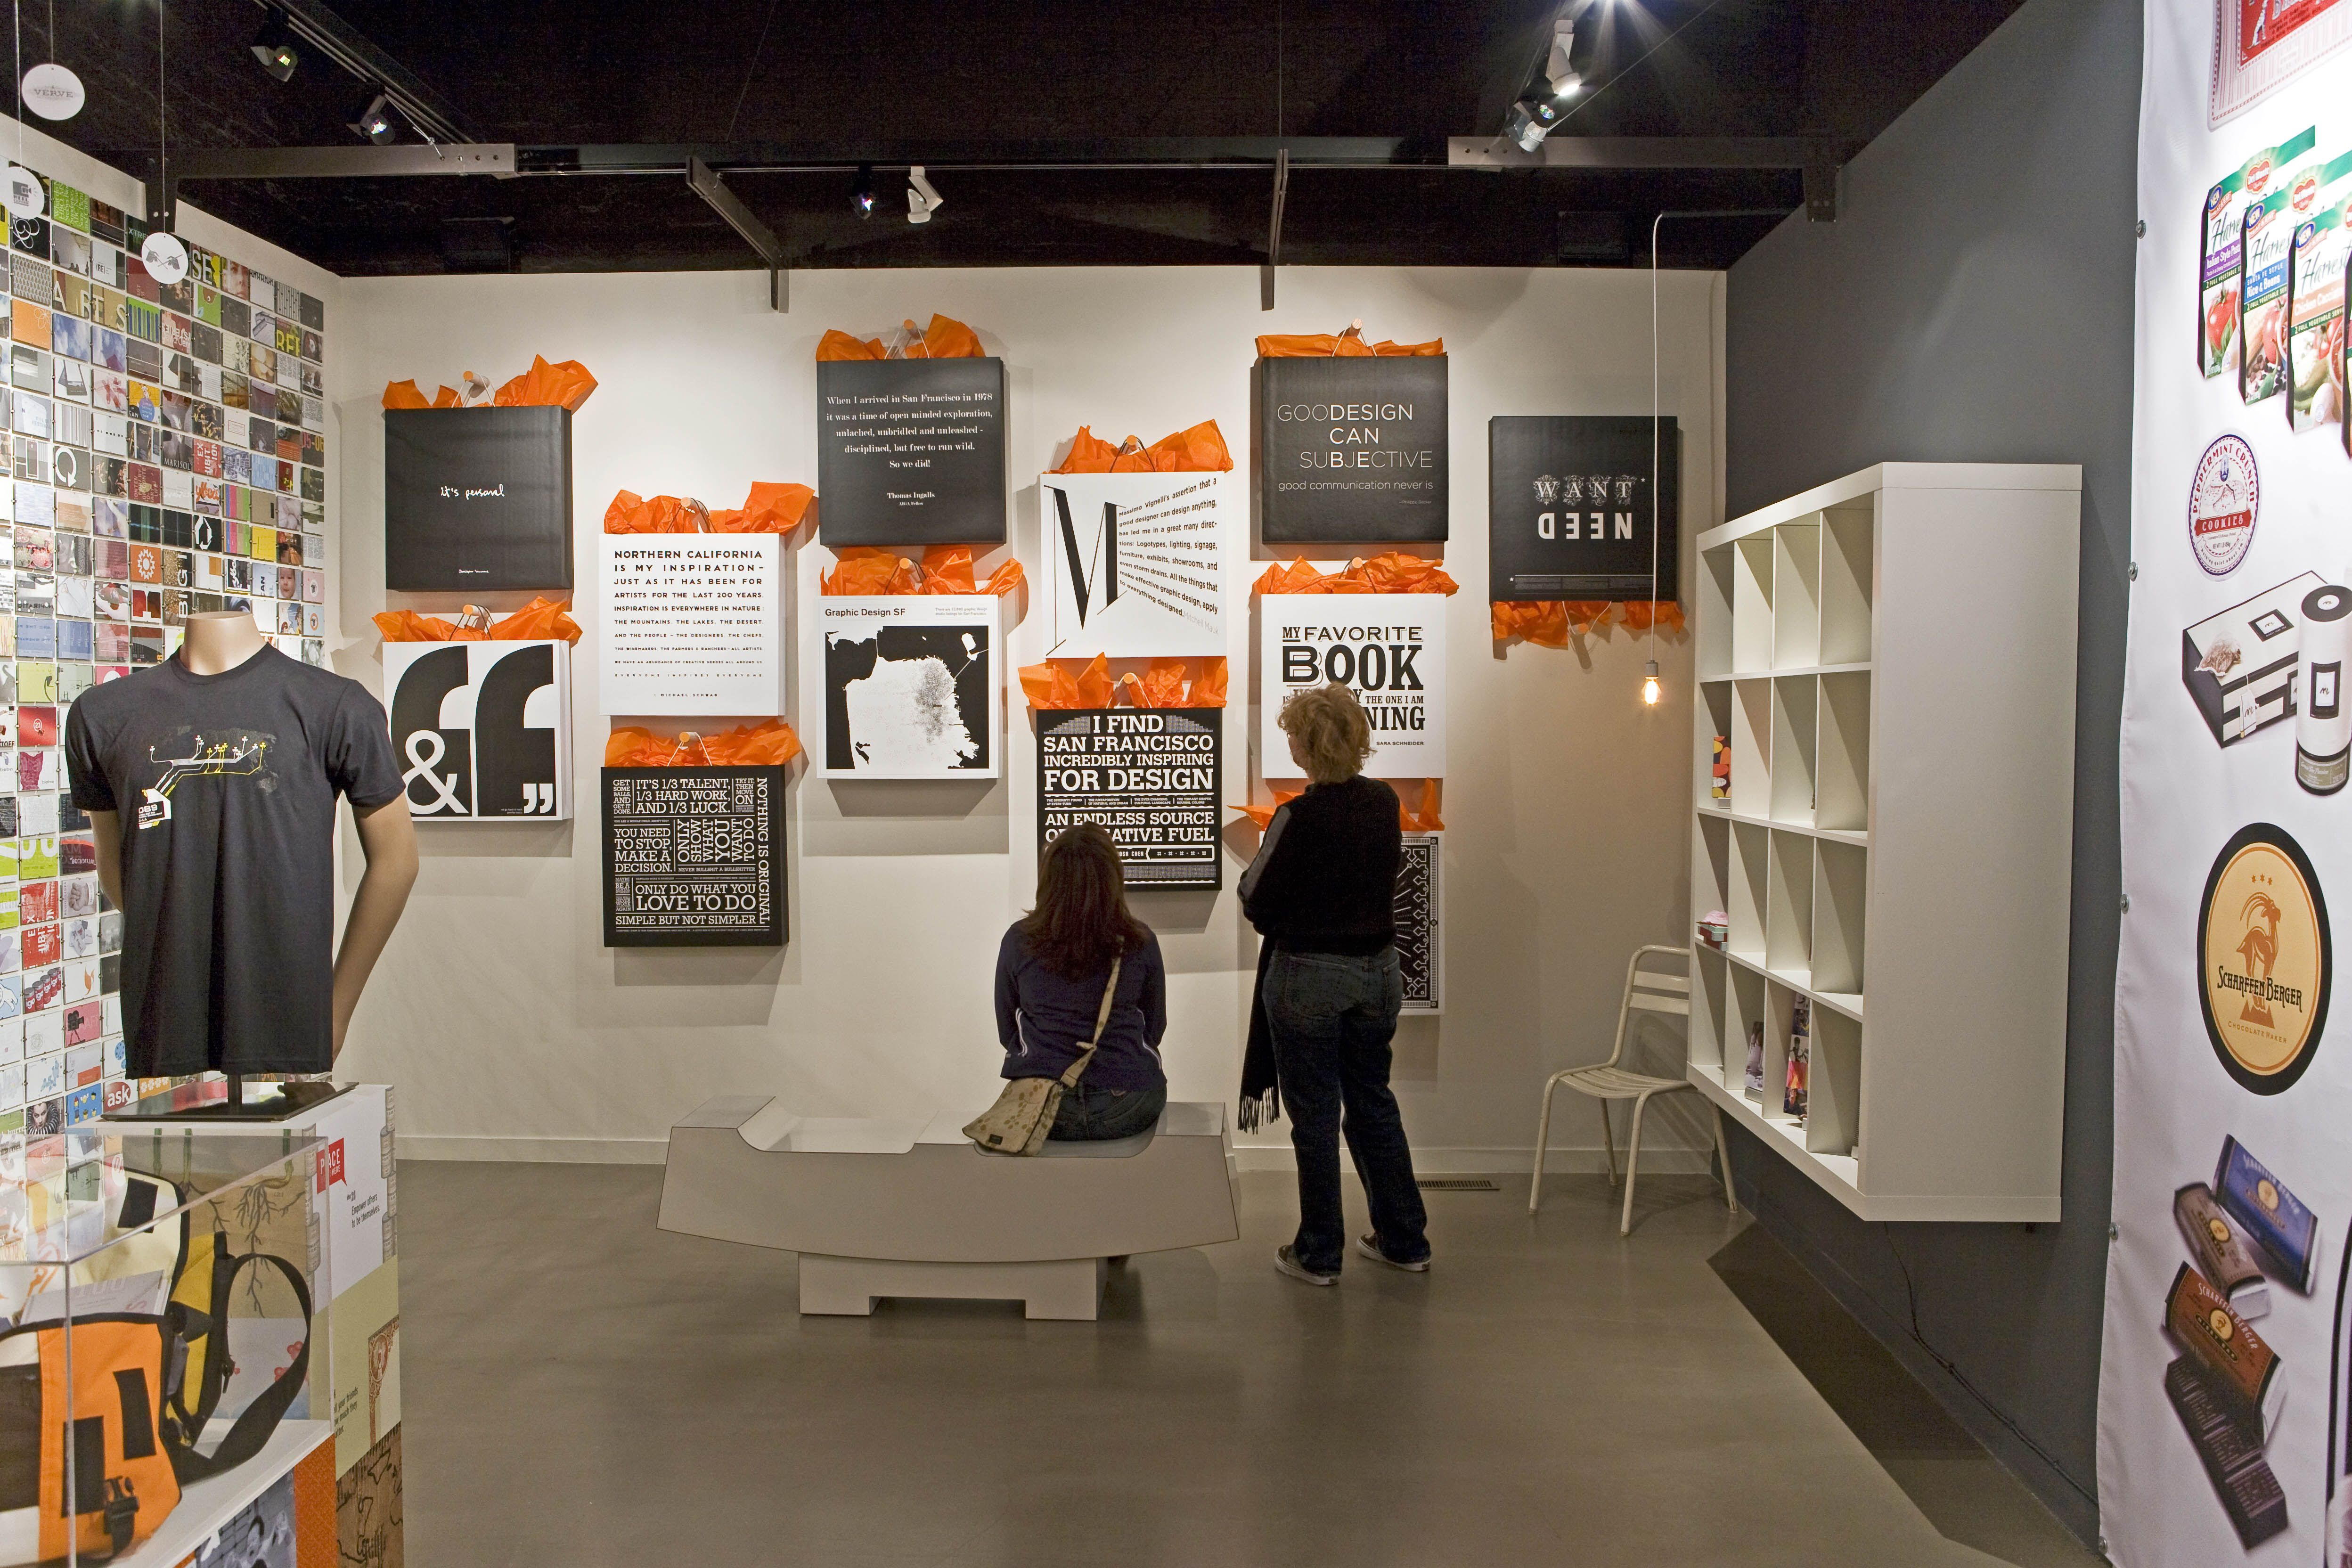 San Francisco Graphic Design exhibit at the Museum of Craft and